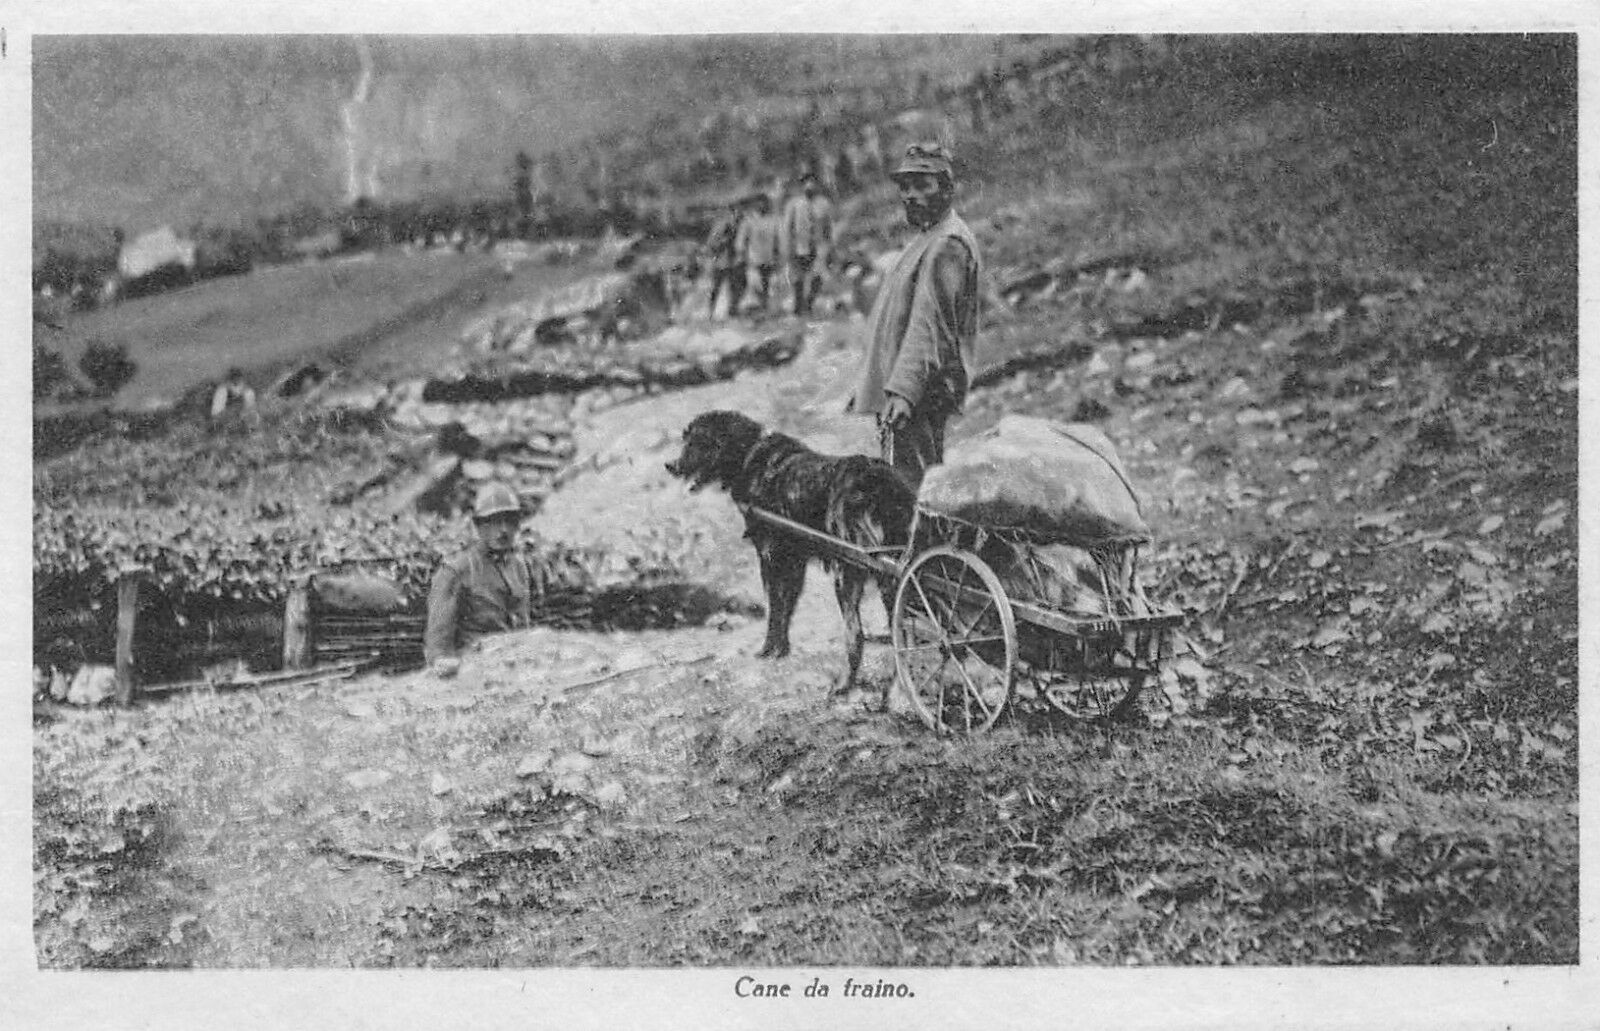 C2778) WW1, CANE DA TRAINO CON IL CARRETTINO PIENO DI MATERIALE.